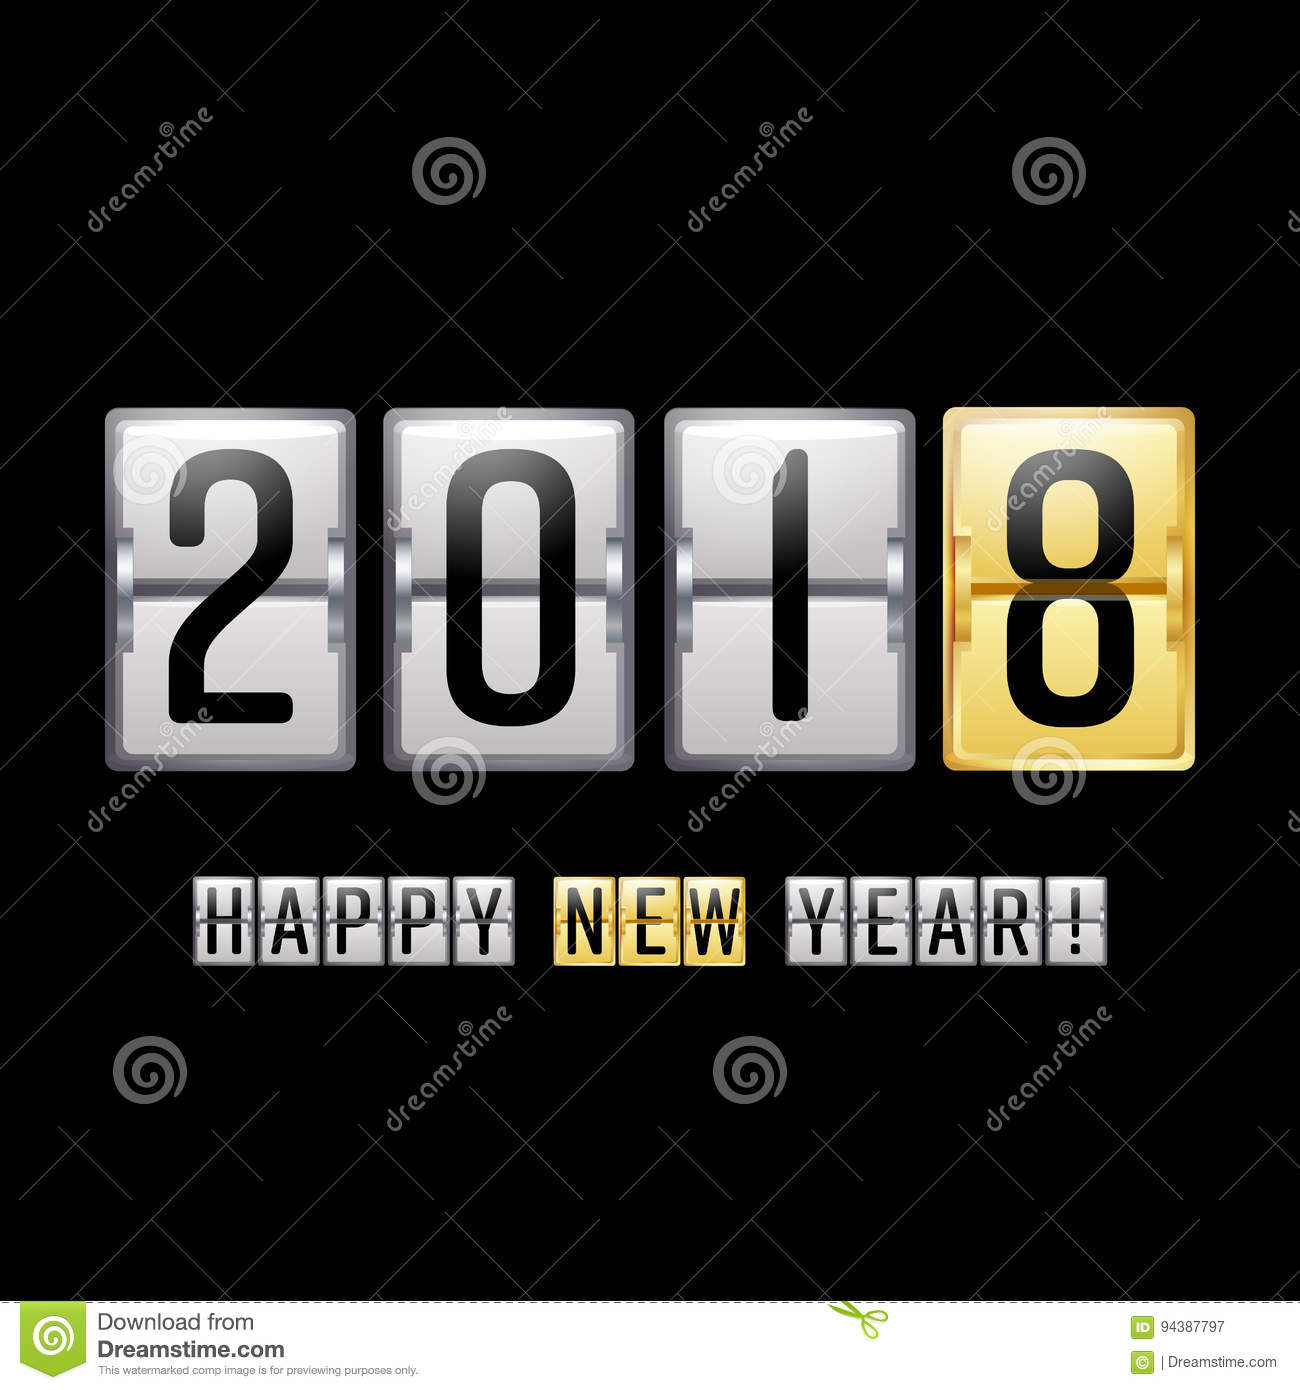 happy new year 2018 vector scoreboard counter chinese new year 2018 greeting background